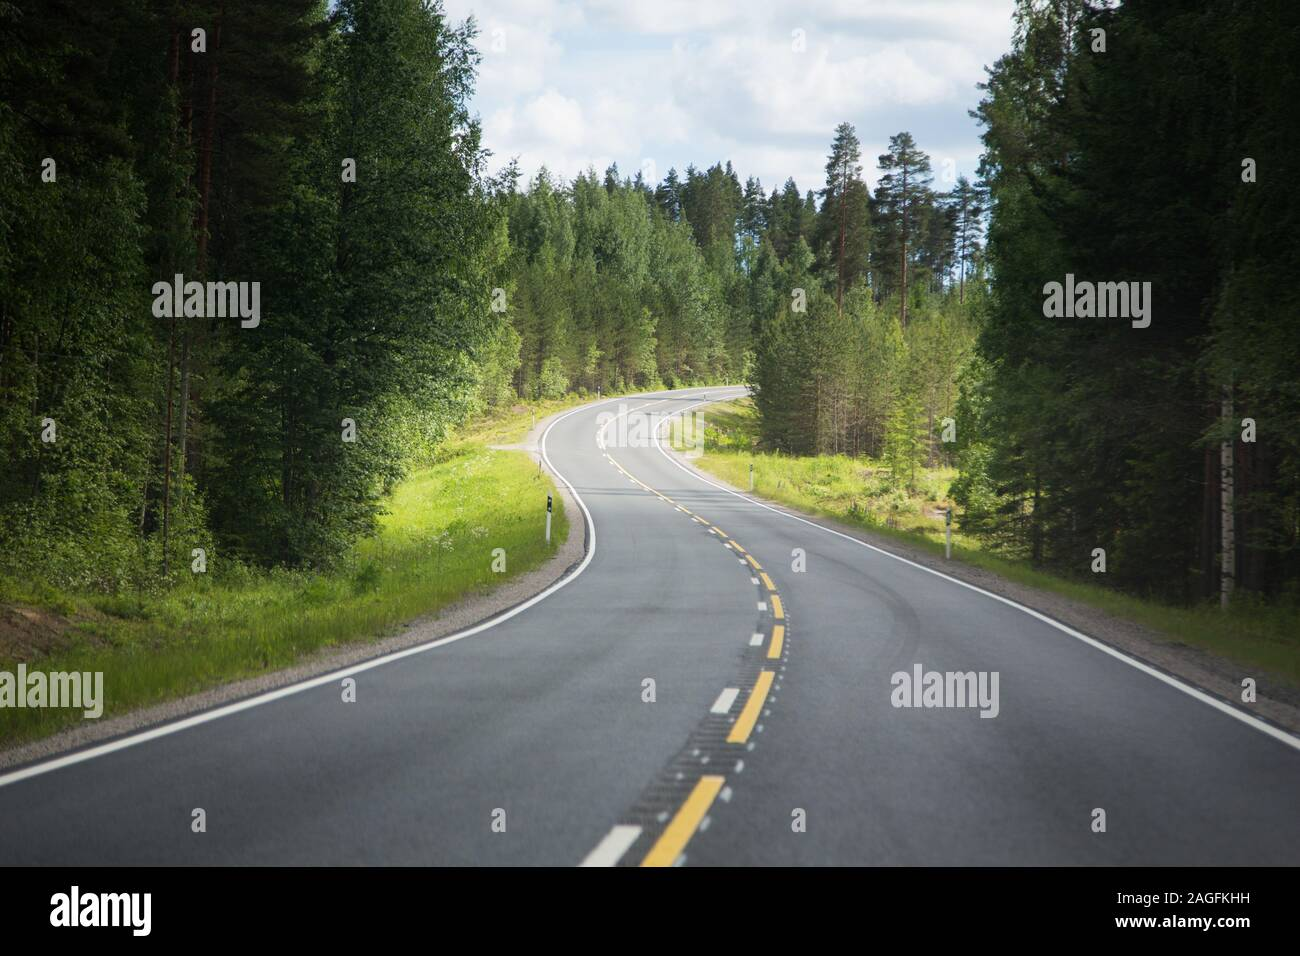 Paved strech of a country road leading into the distance Stock Photo